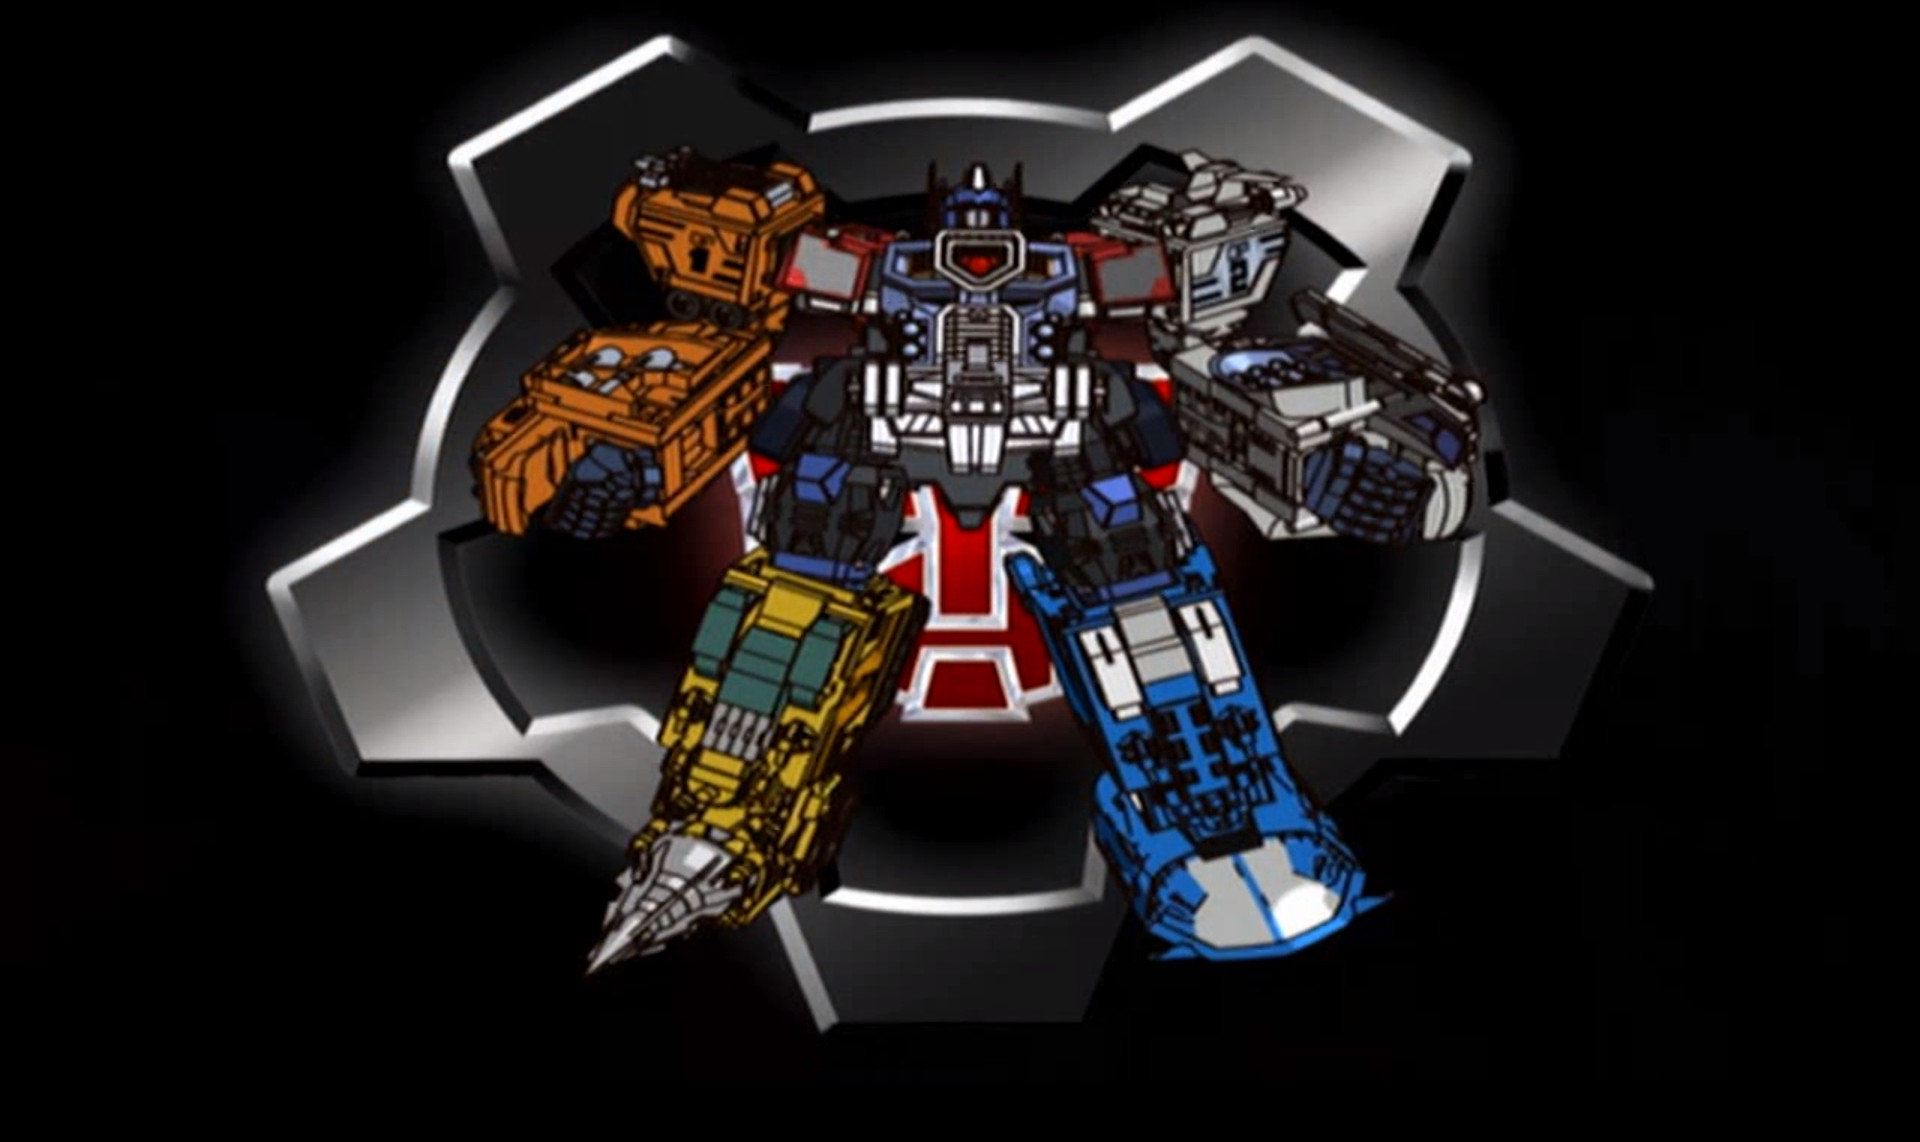 Transformers: Energon images Optimus Prime HD wallpaper and background  photos